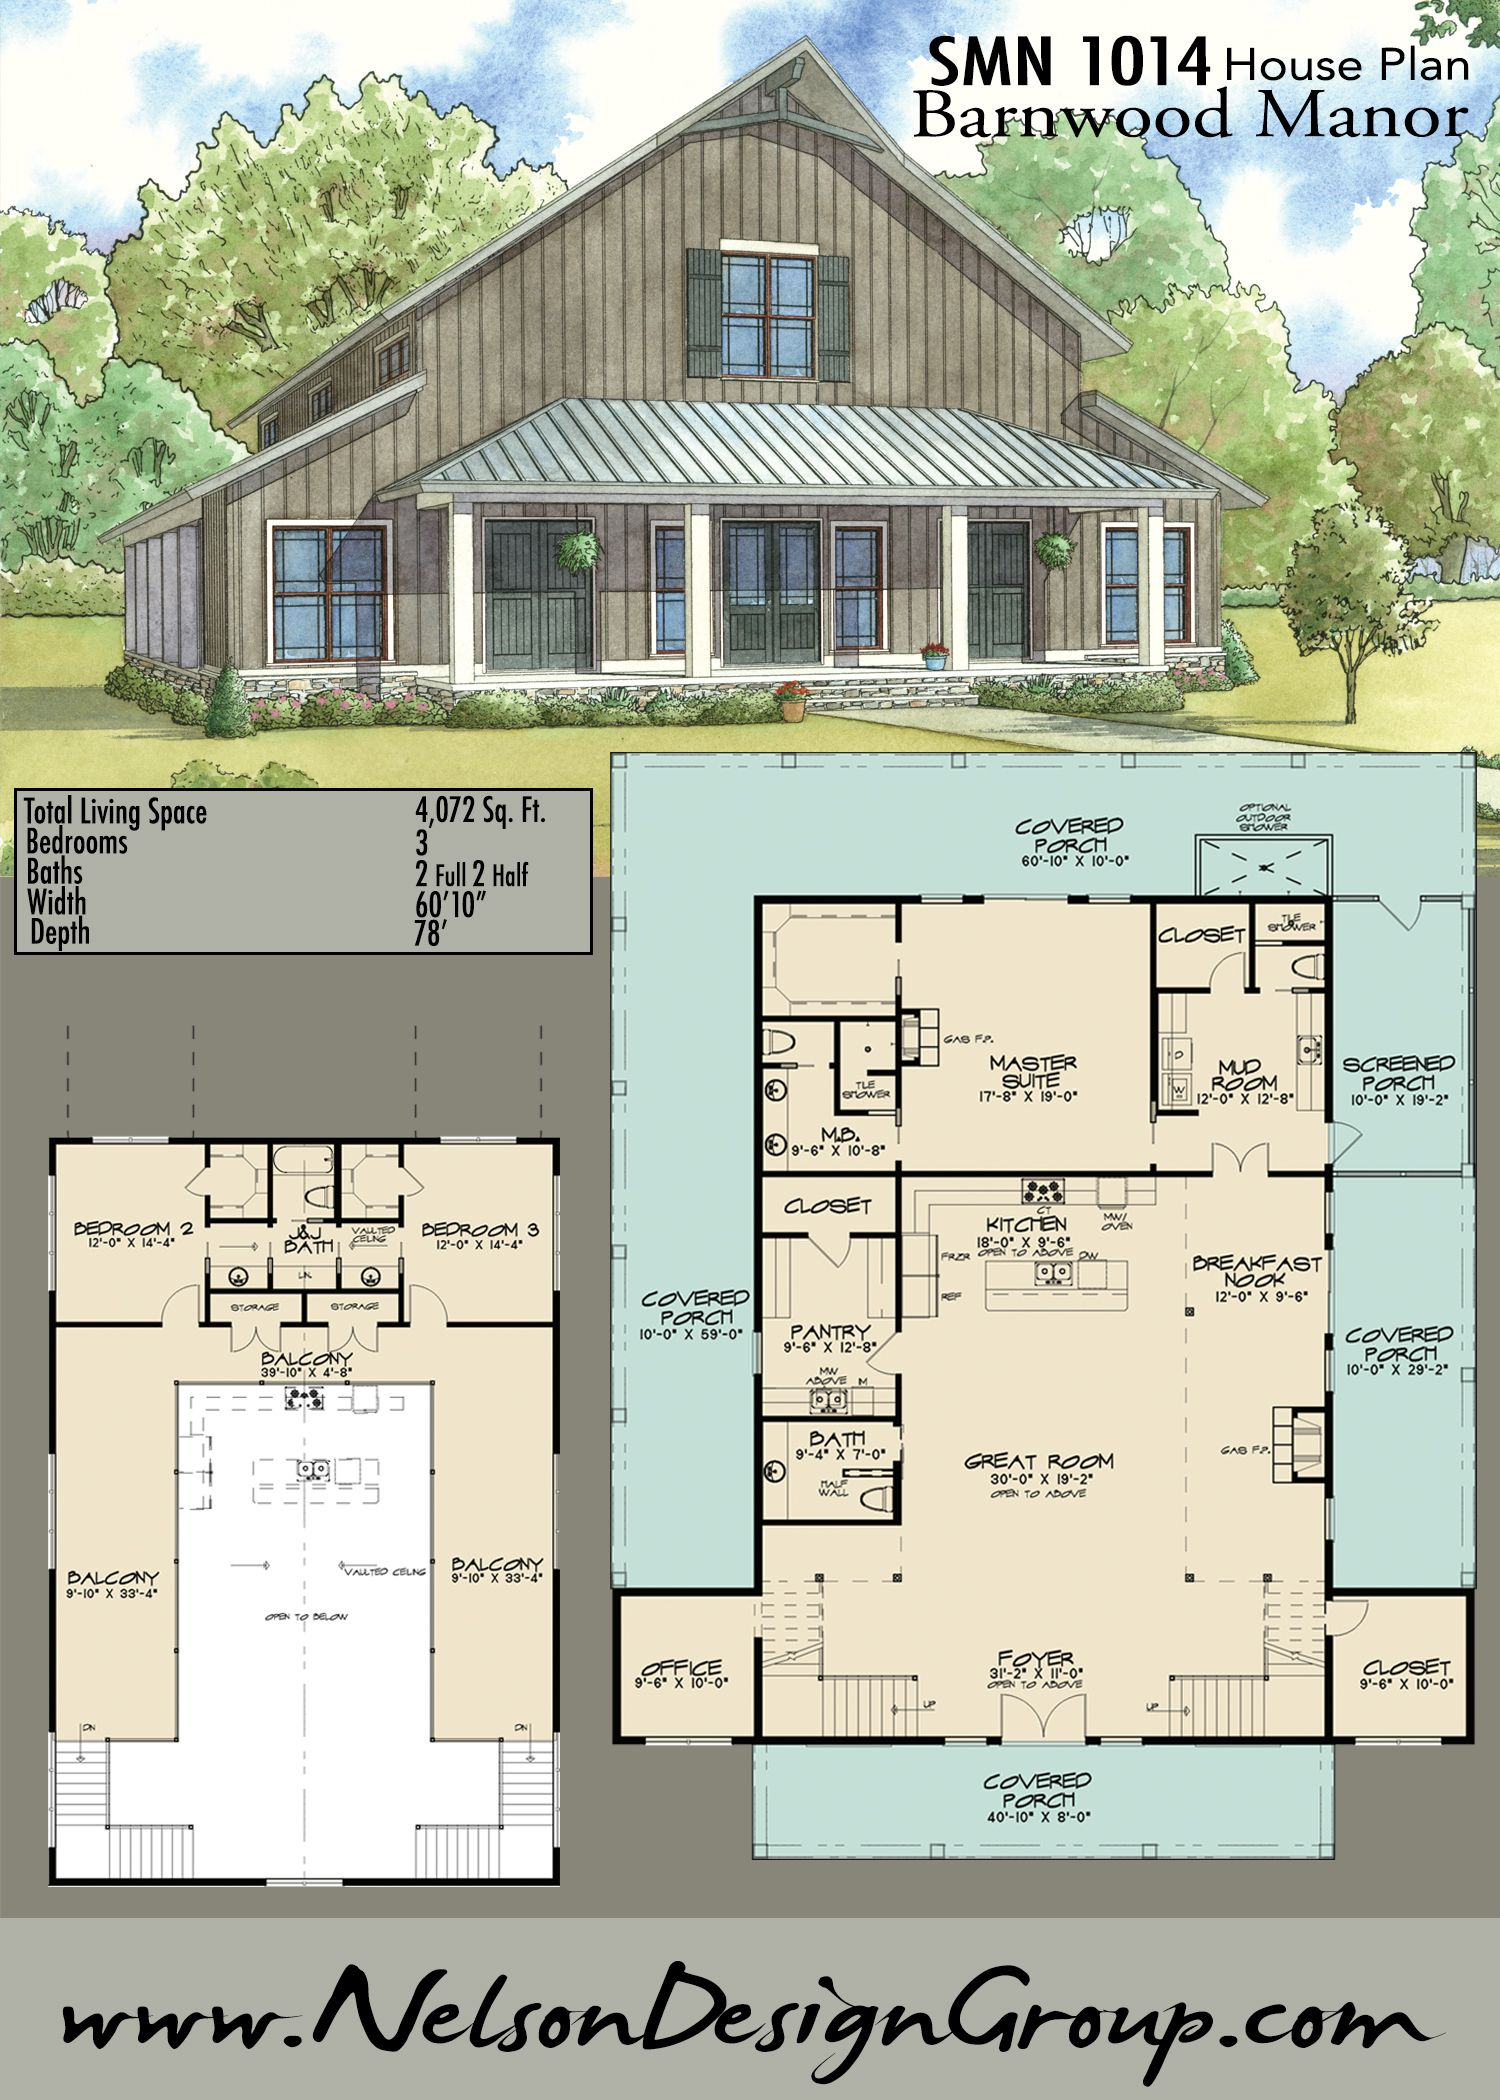 Houseplan Homedesign Homesweethome Rustic Barn Unique Uniquehomes Style